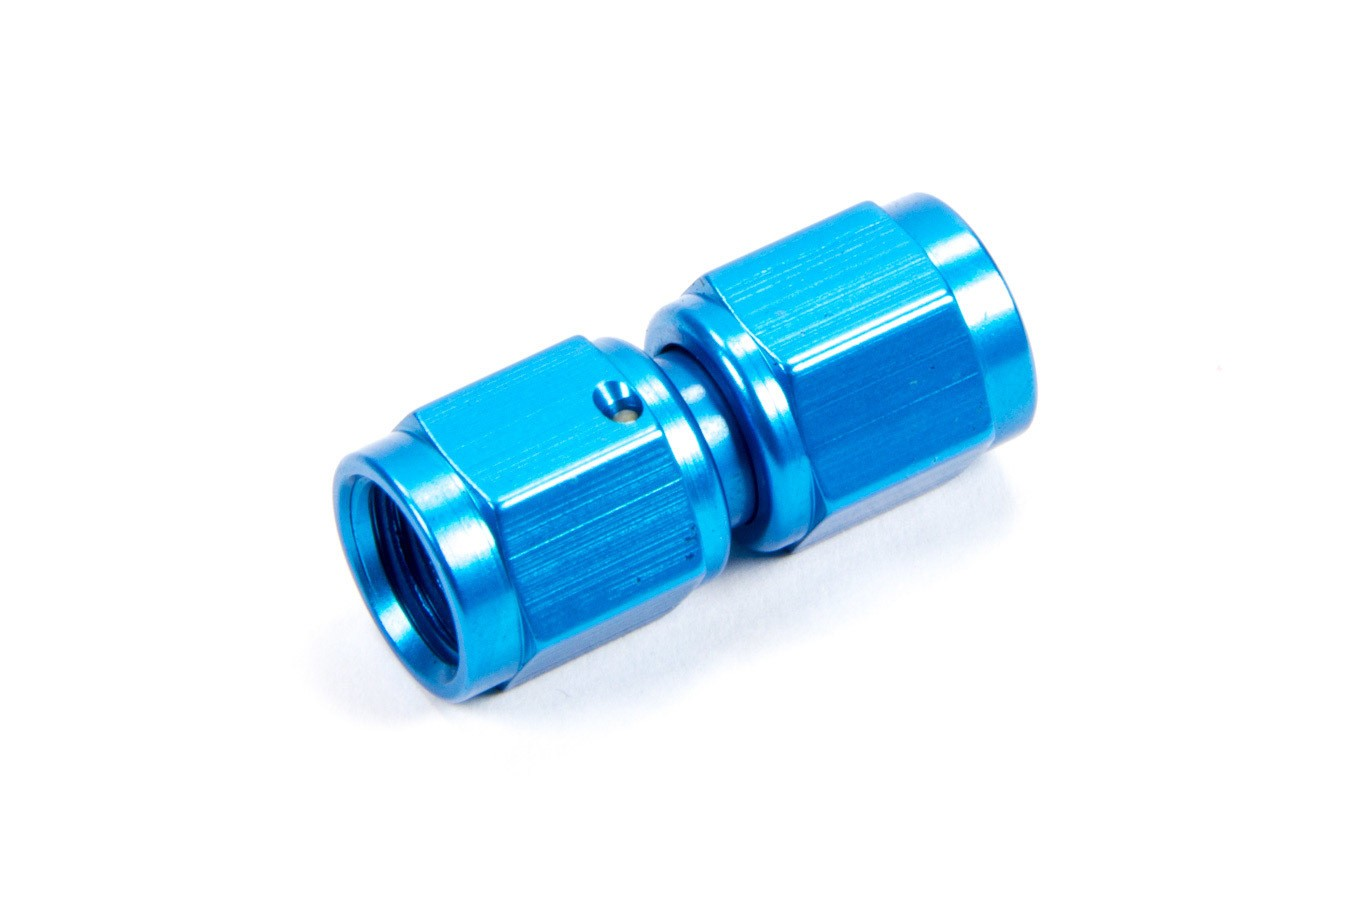 Fragola 496104 Fitting, Adapter, Straight, 4 AN Female Swivel to 4 AN Female Swivel, Aluminum, Blue Anodize, Each